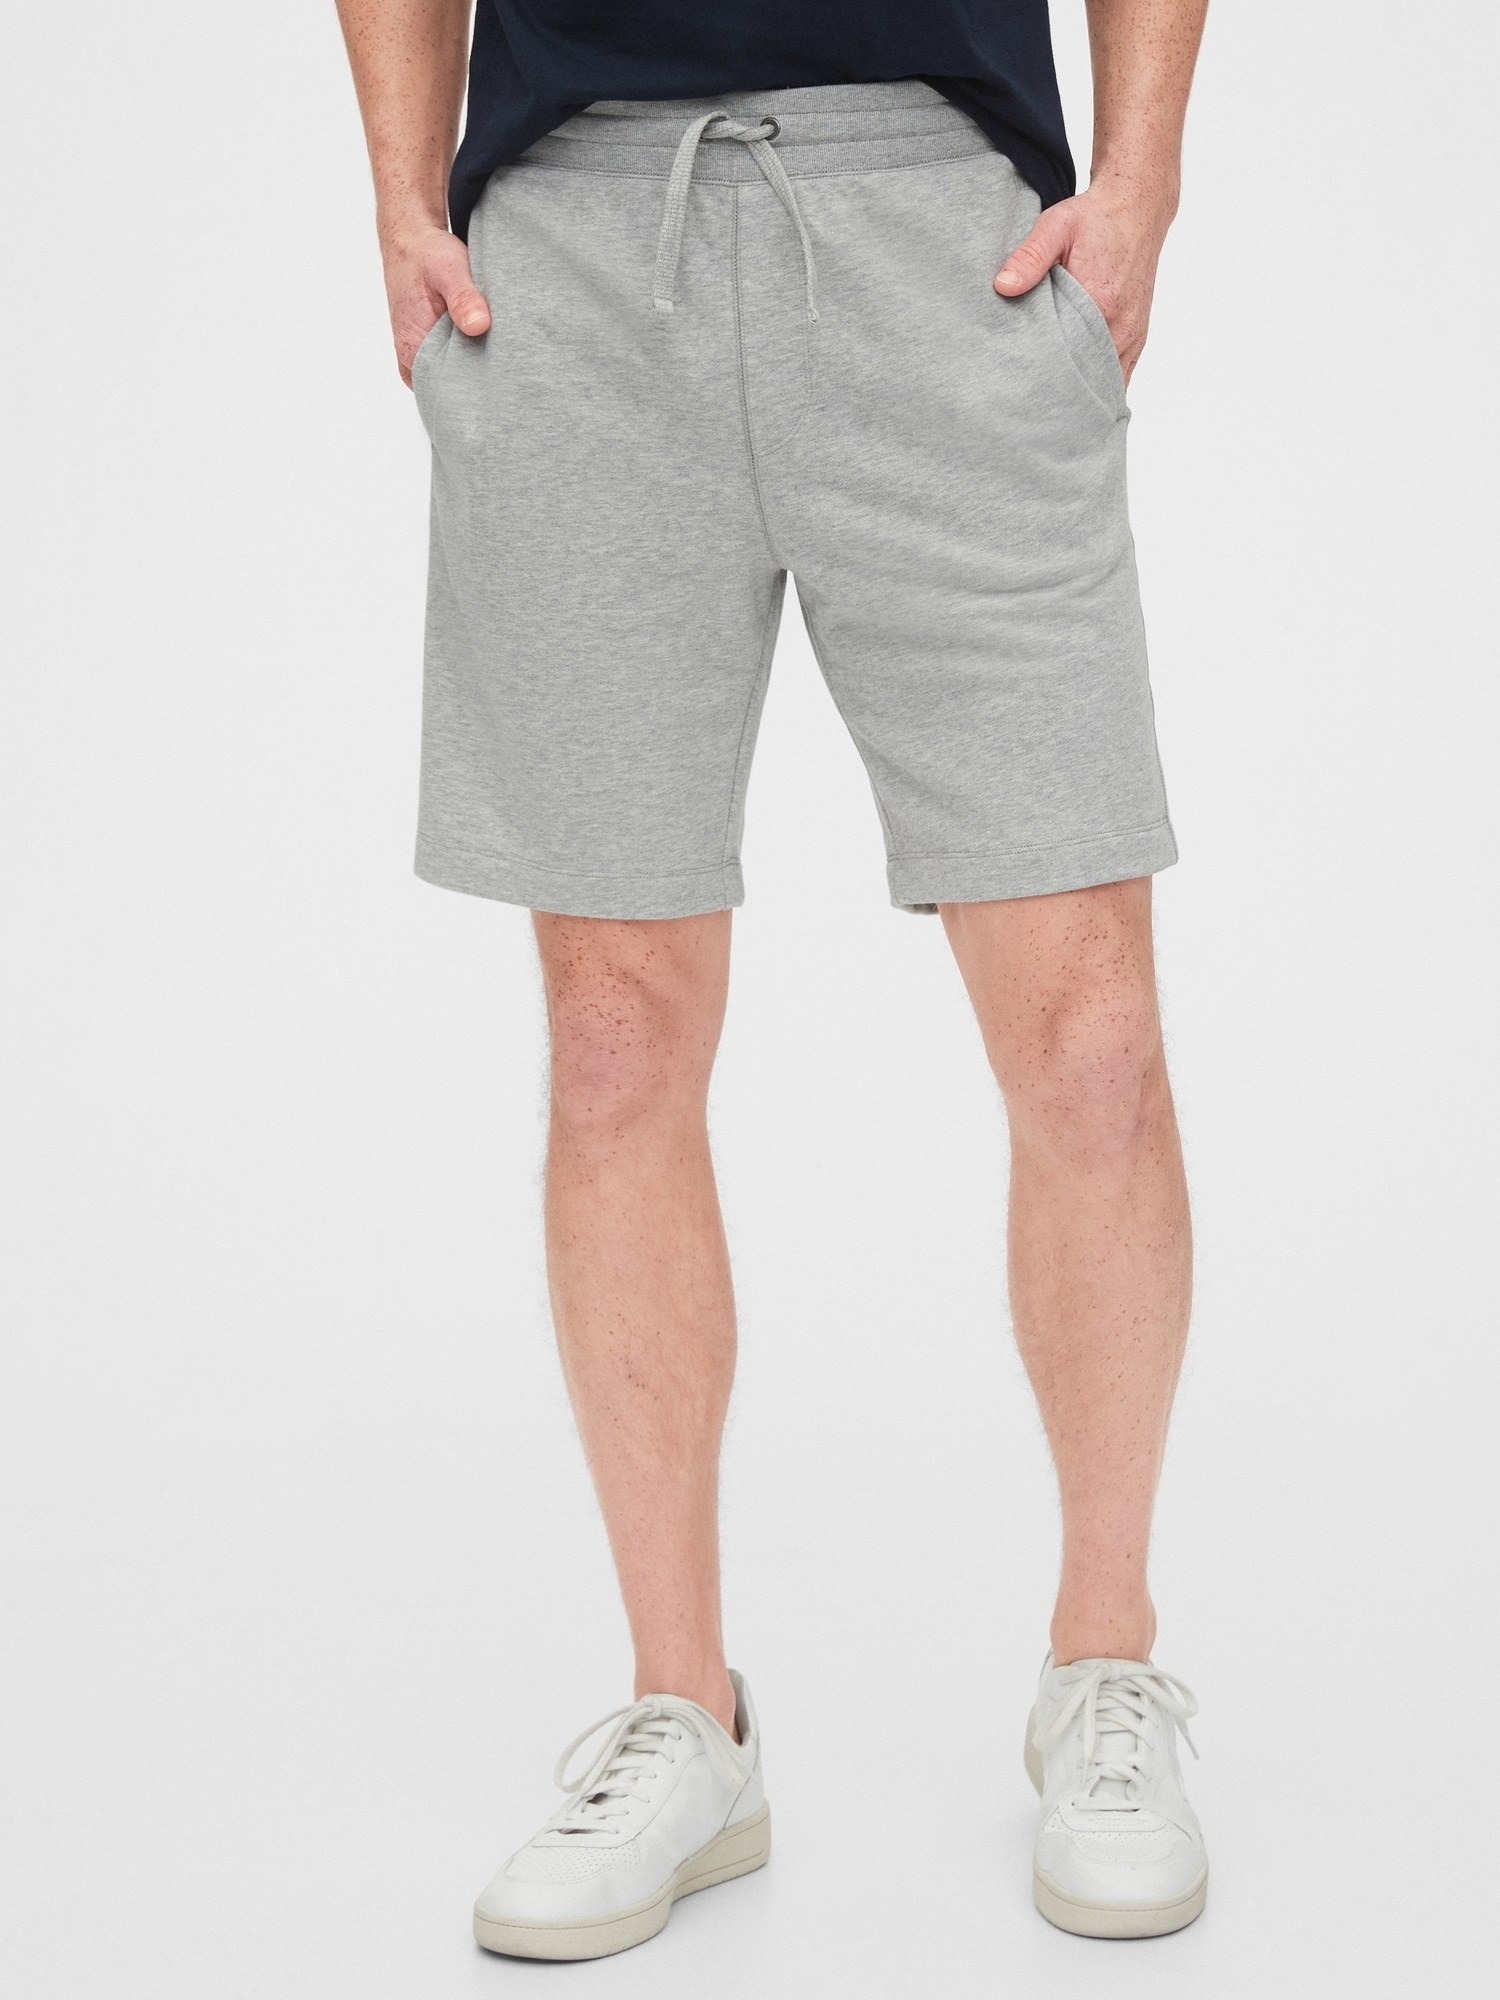 Model wearing jogger shorts in heather grey